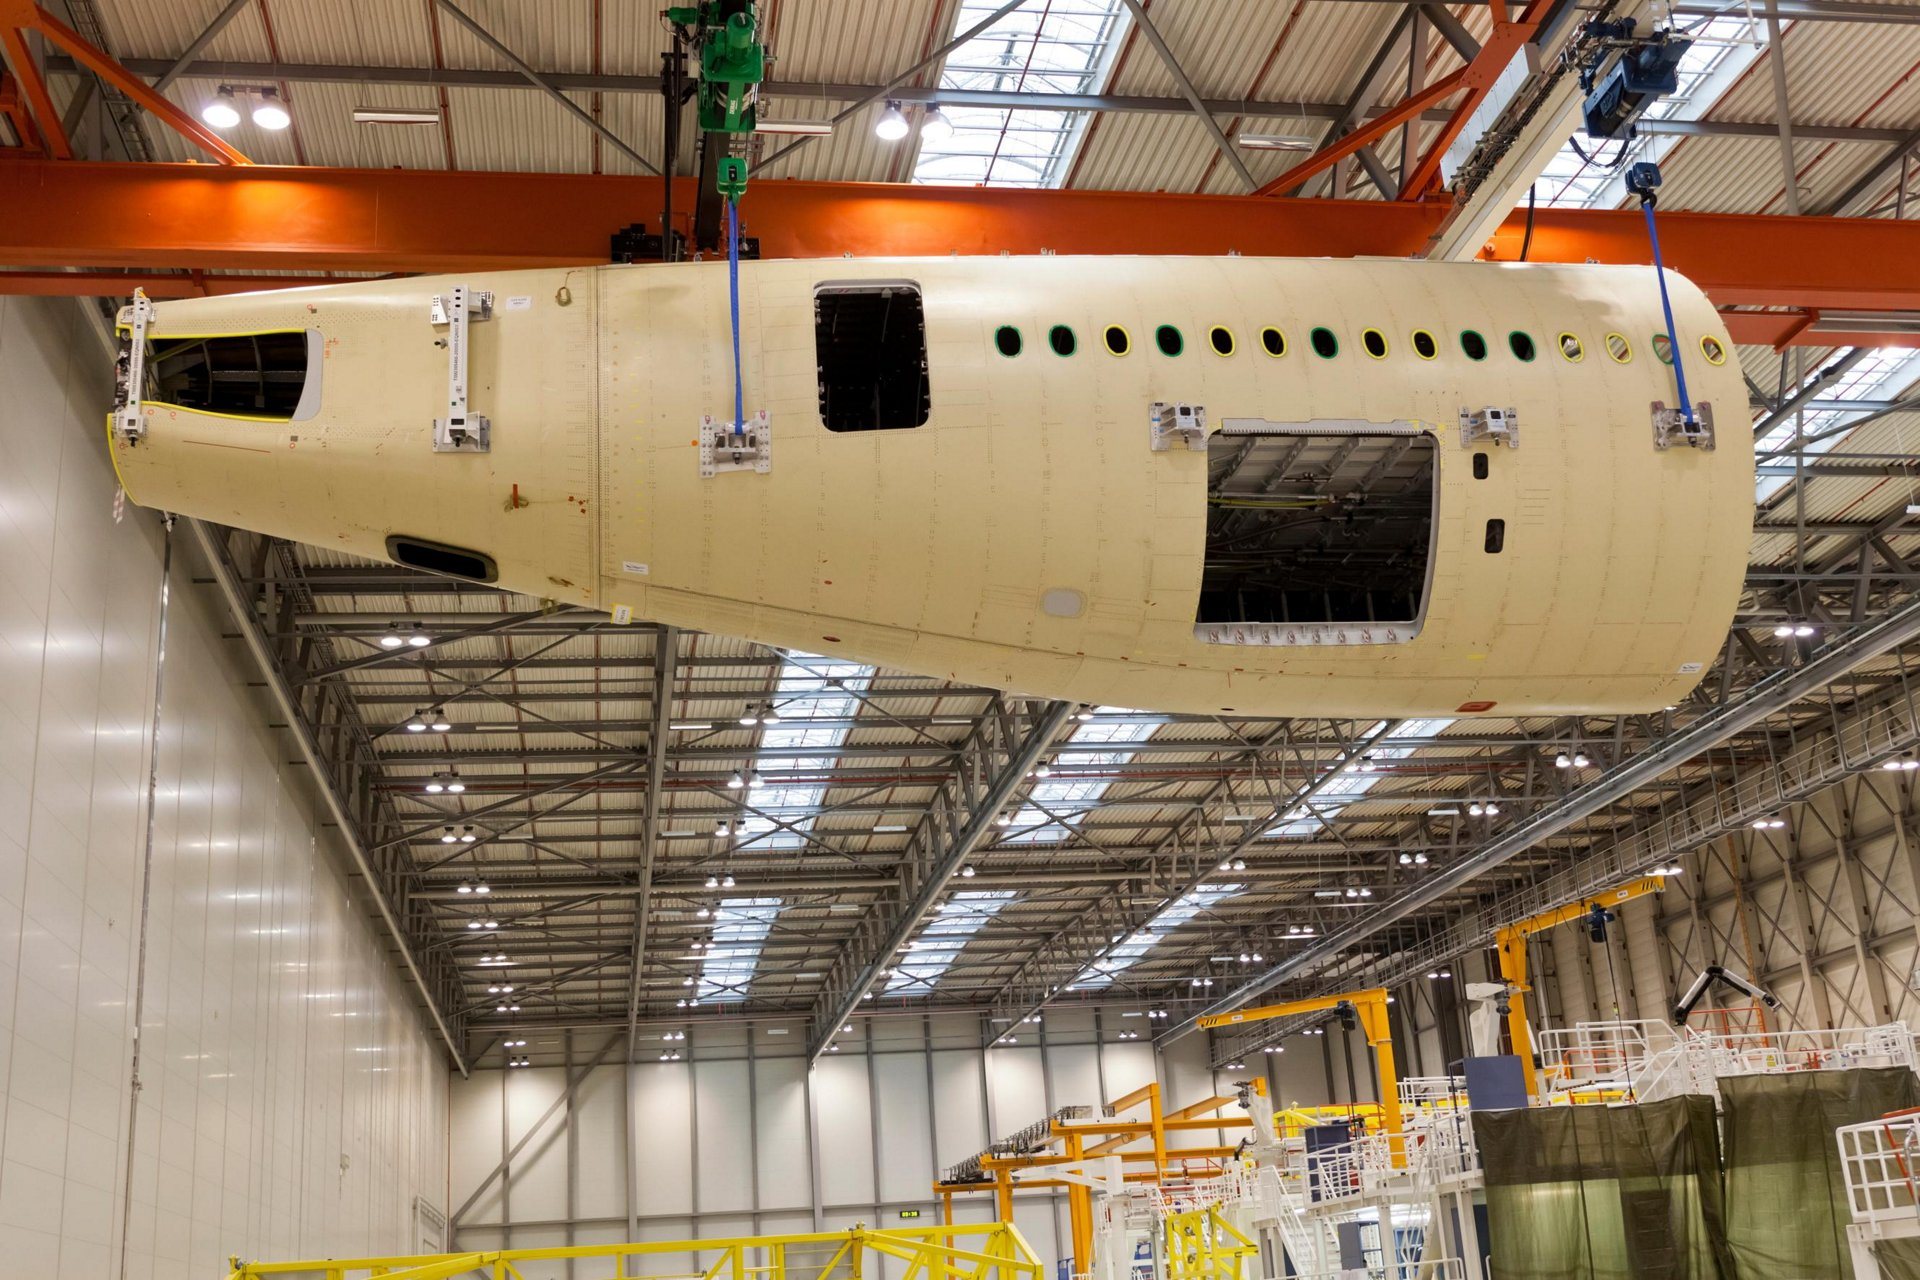 First A350 XWB aft fuselage built. Structural assembly of the first A350 XWB aft fuselage destined for the first flying A350 XWB (MSN1) has been completed at Airbus' manufacturing site in Hamburg, Germany.